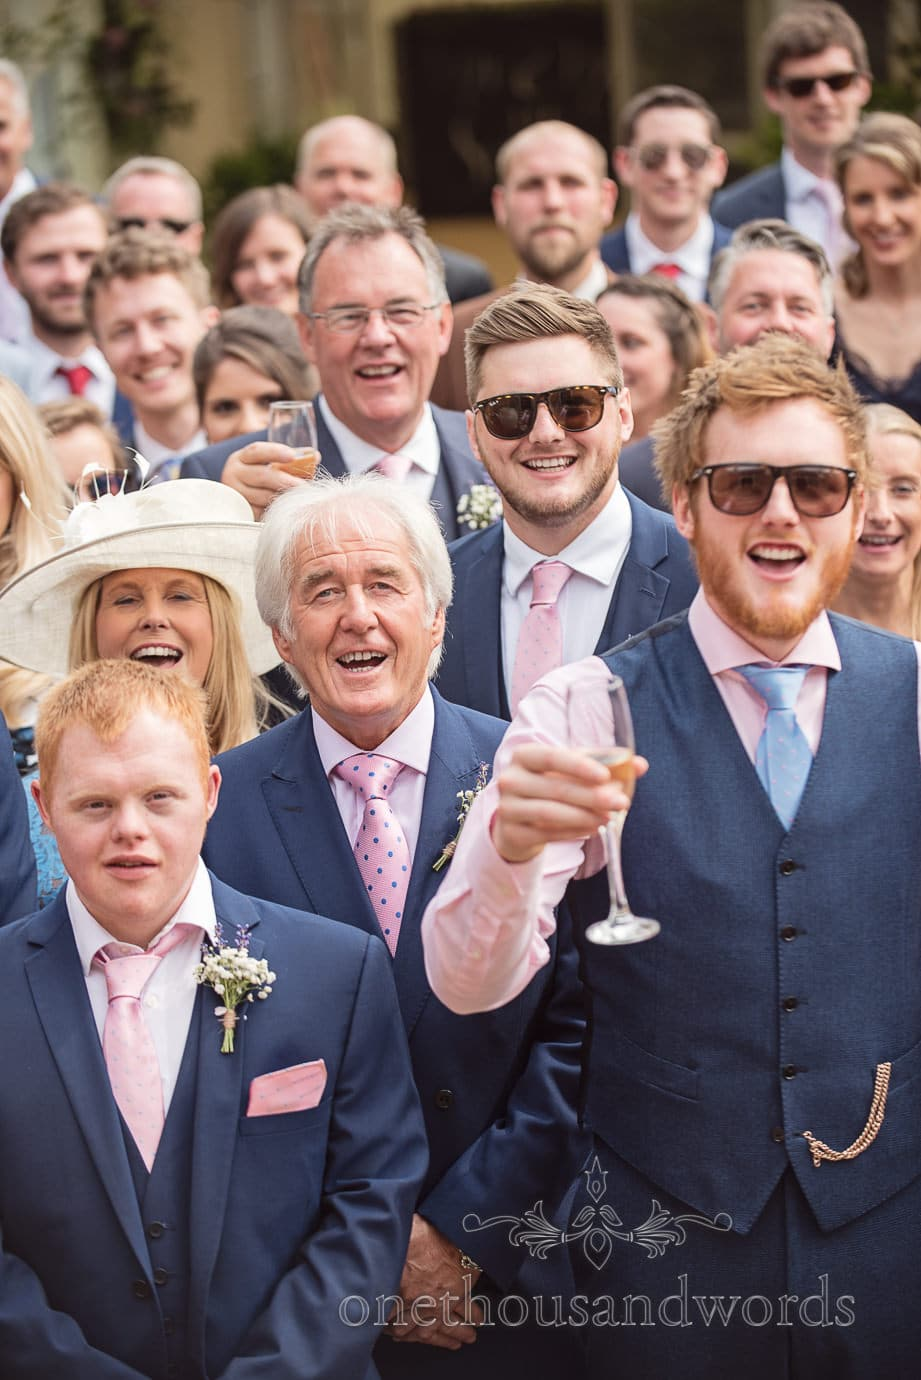 Groomsmen in blue suits and pink ties smile of group wedding photographs